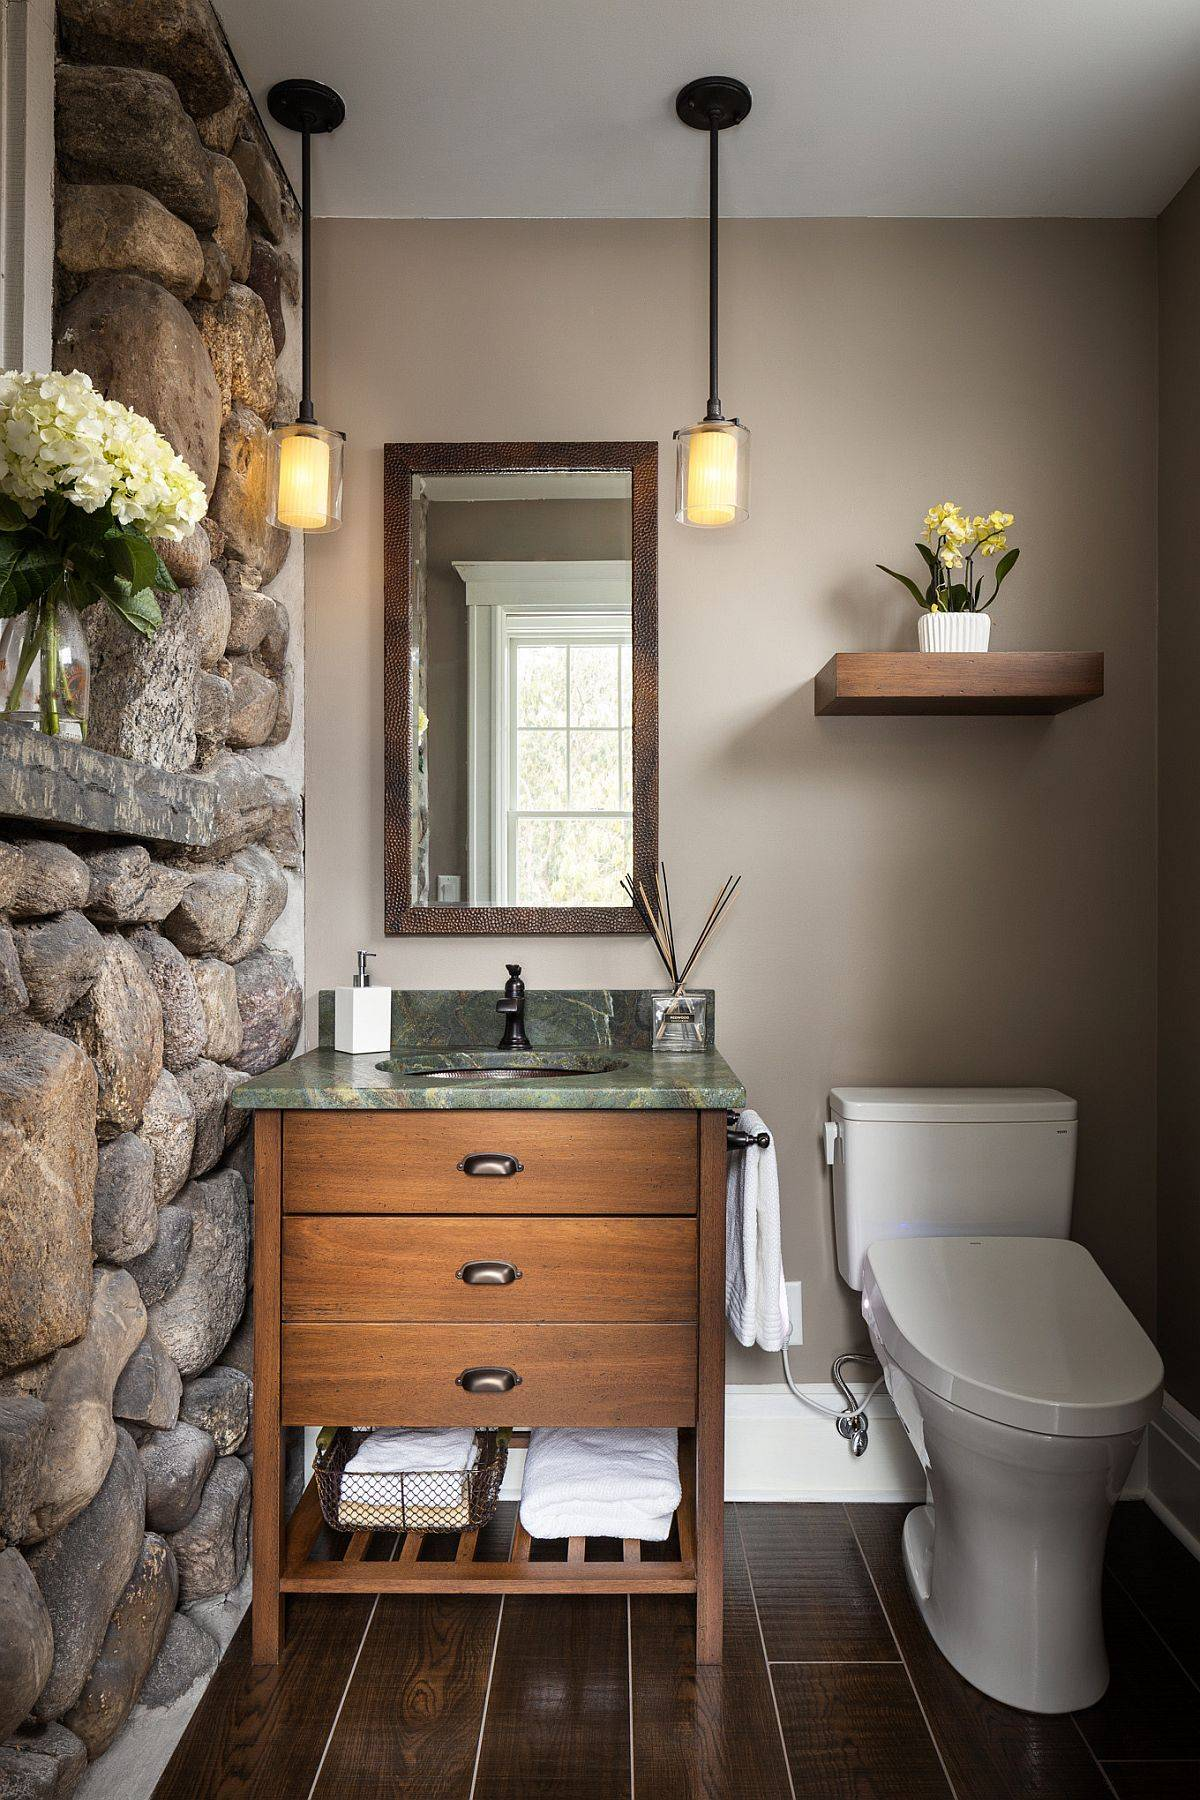 Rustic-powder-room-inspired-by-the-classic-cabin-style-in-New-York-with-a-stone-wall-10787